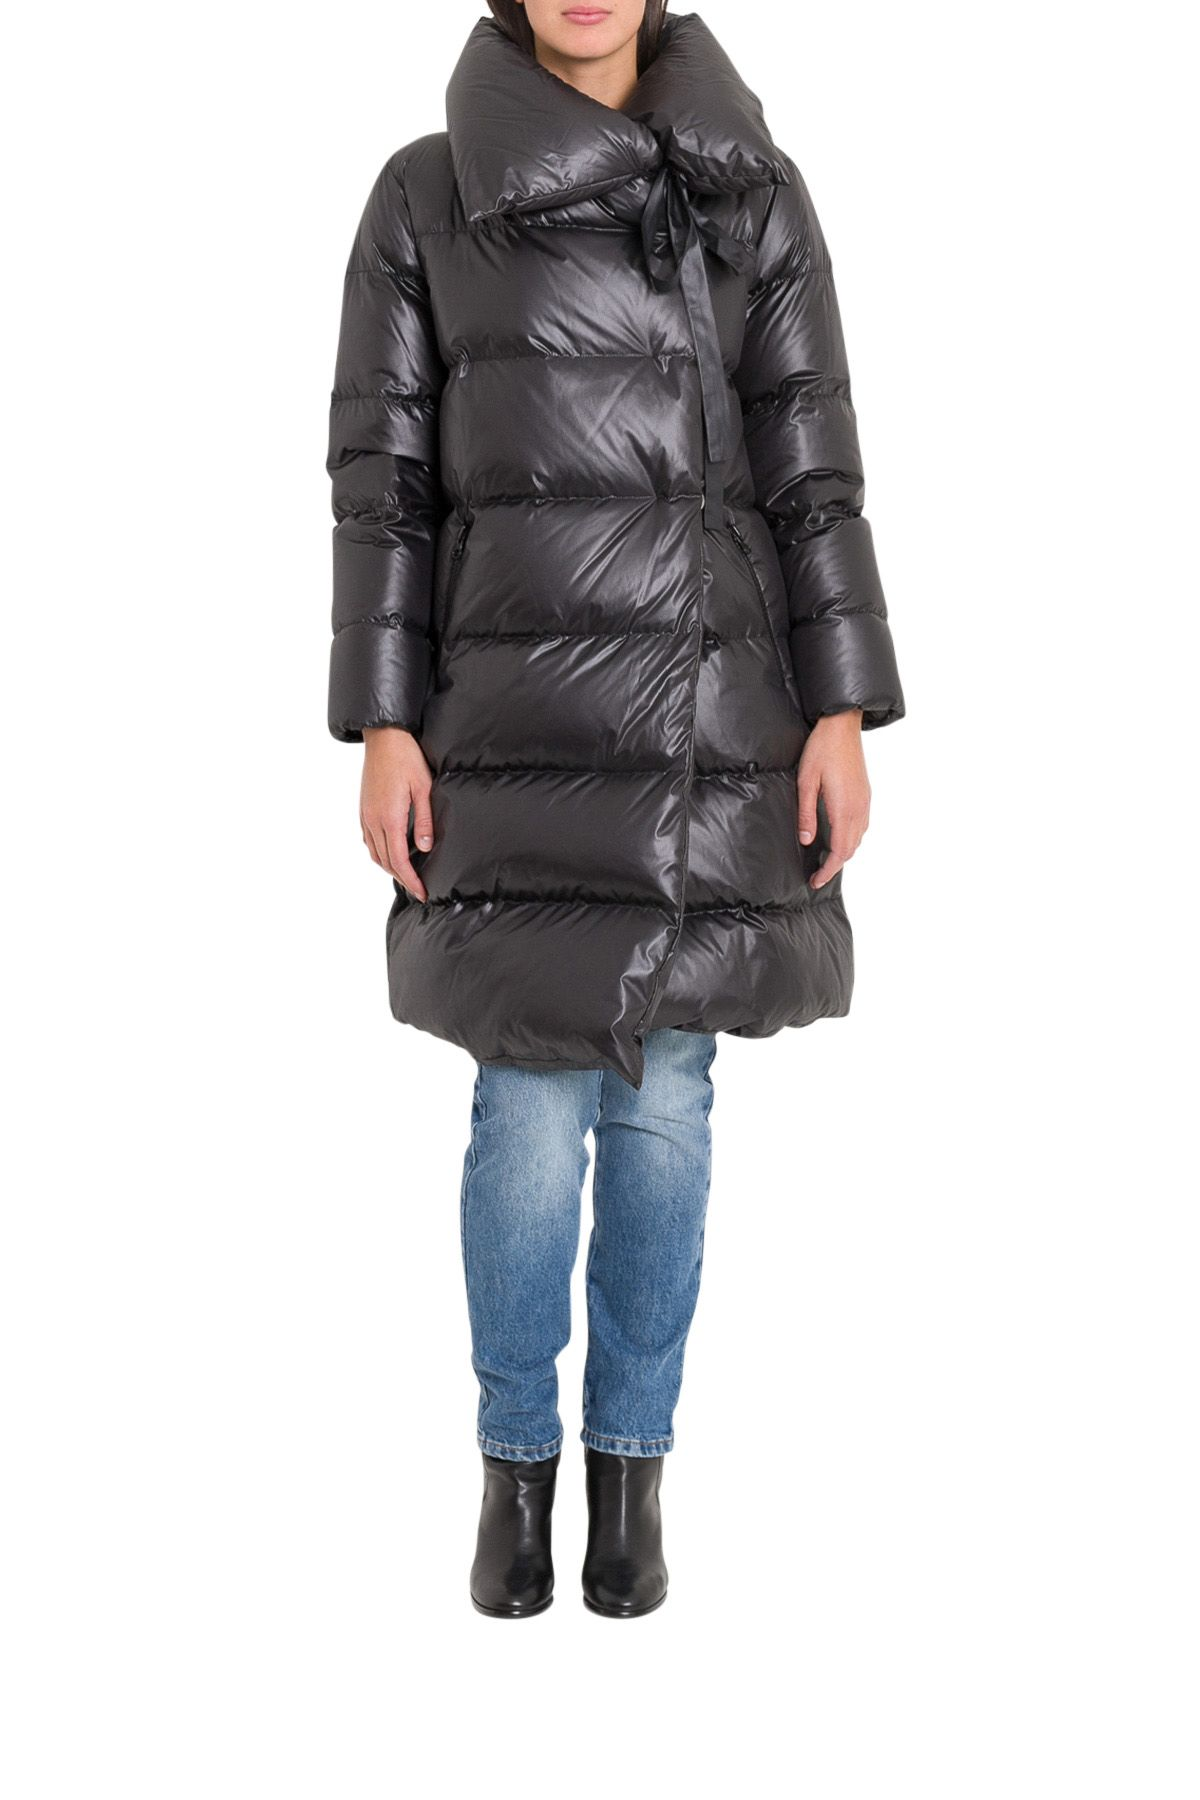 BACON CLOTHING Midi Down Coat in Black